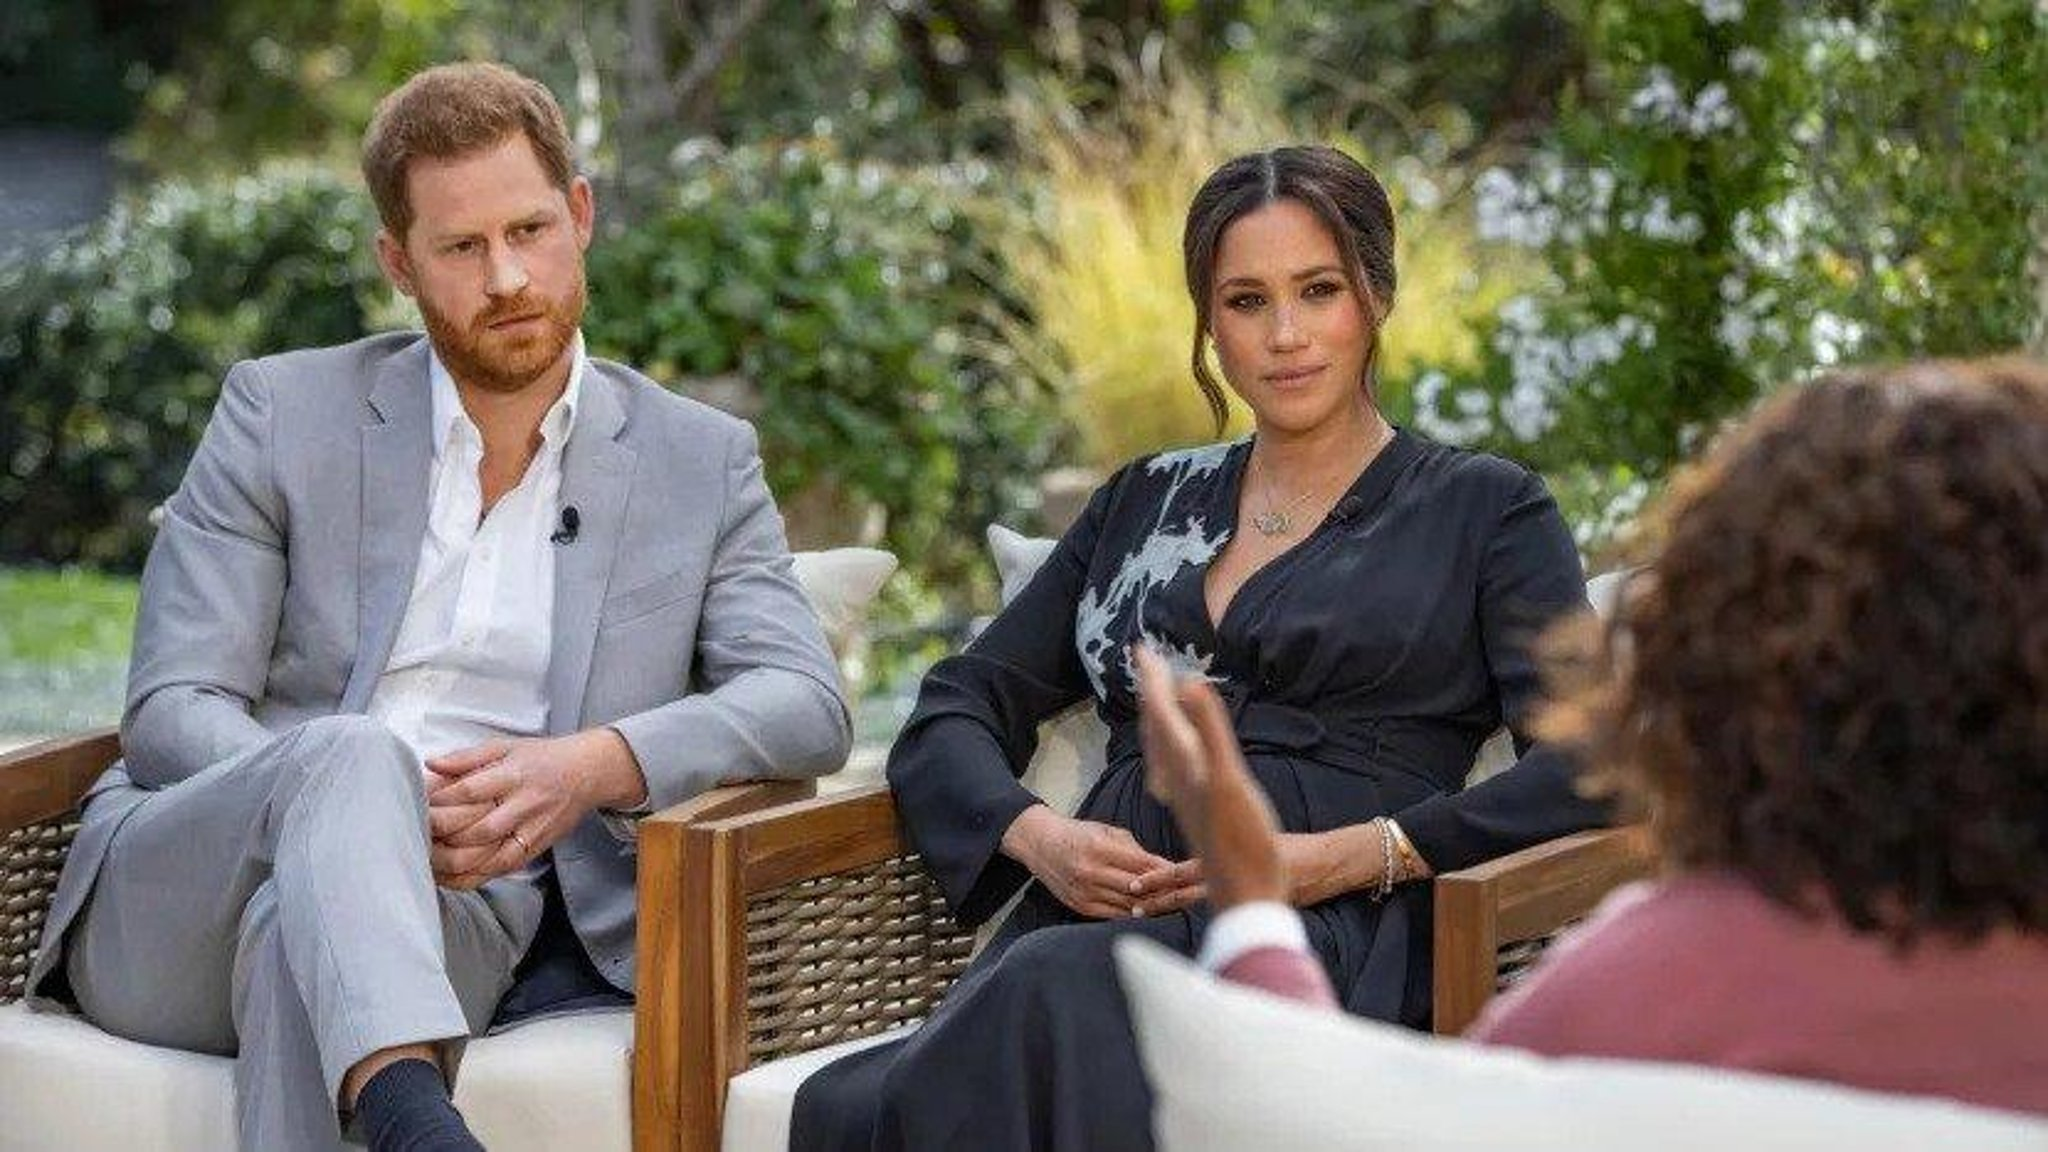 Who is Meghan Markle referring to when she says The Firm during interview with Oprah Winfrey